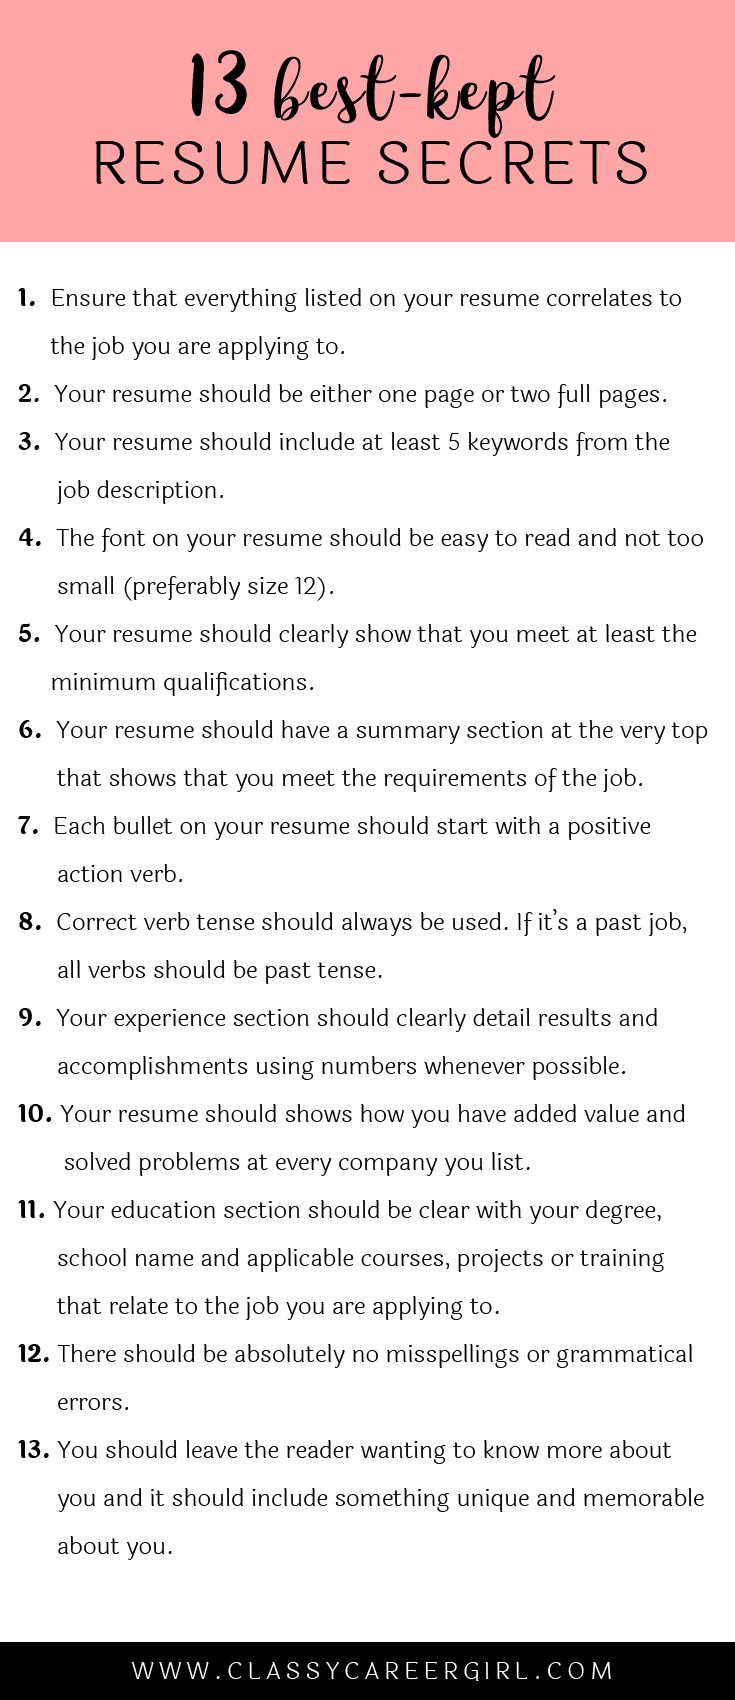 Opposenewapstandardsus  Unique  Ideas About Resume On Pinterest  Cv Format Resume Cv And  With Goodlooking Some Hiring Managers Will Toss Your Resume Out If You Dont Know These  With Divine Resume Objective Statement Examples Also Good Skills To Put On Resume In Addition How To Make A Professional Resume And It Resume Examples As Well As What Is Resume Additionally Attorney Resume From Pinterestcom With Opposenewapstandardsus  Goodlooking  Ideas About Resume On Pinterest  Cv Format Resume Cv And  With Divine Some Hiring Managers Will Toss Your Resume Out If You Dont Know These  And Unique Resume Objective Statement Examples Also Good Skills To Put On Resume In Addition How To Make A Professional Resume From Pinterestcom